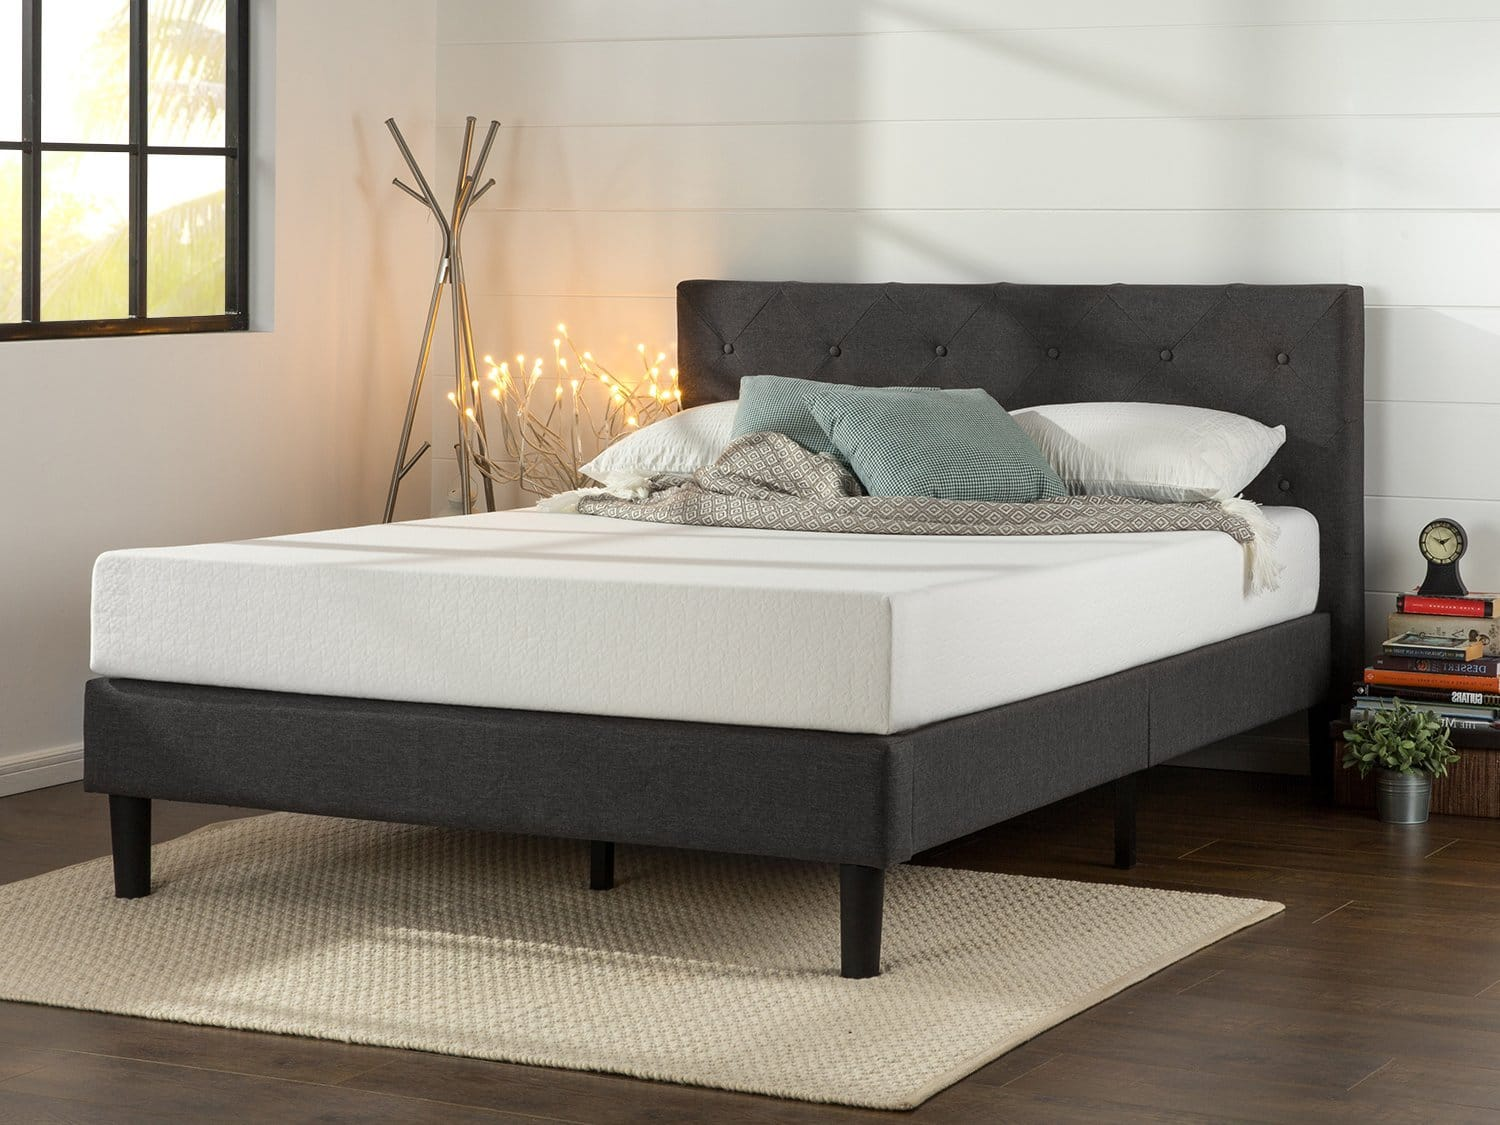 Cute Zinus Upholstered Diamond Stitched Platform Bed Queen Slickdeals net